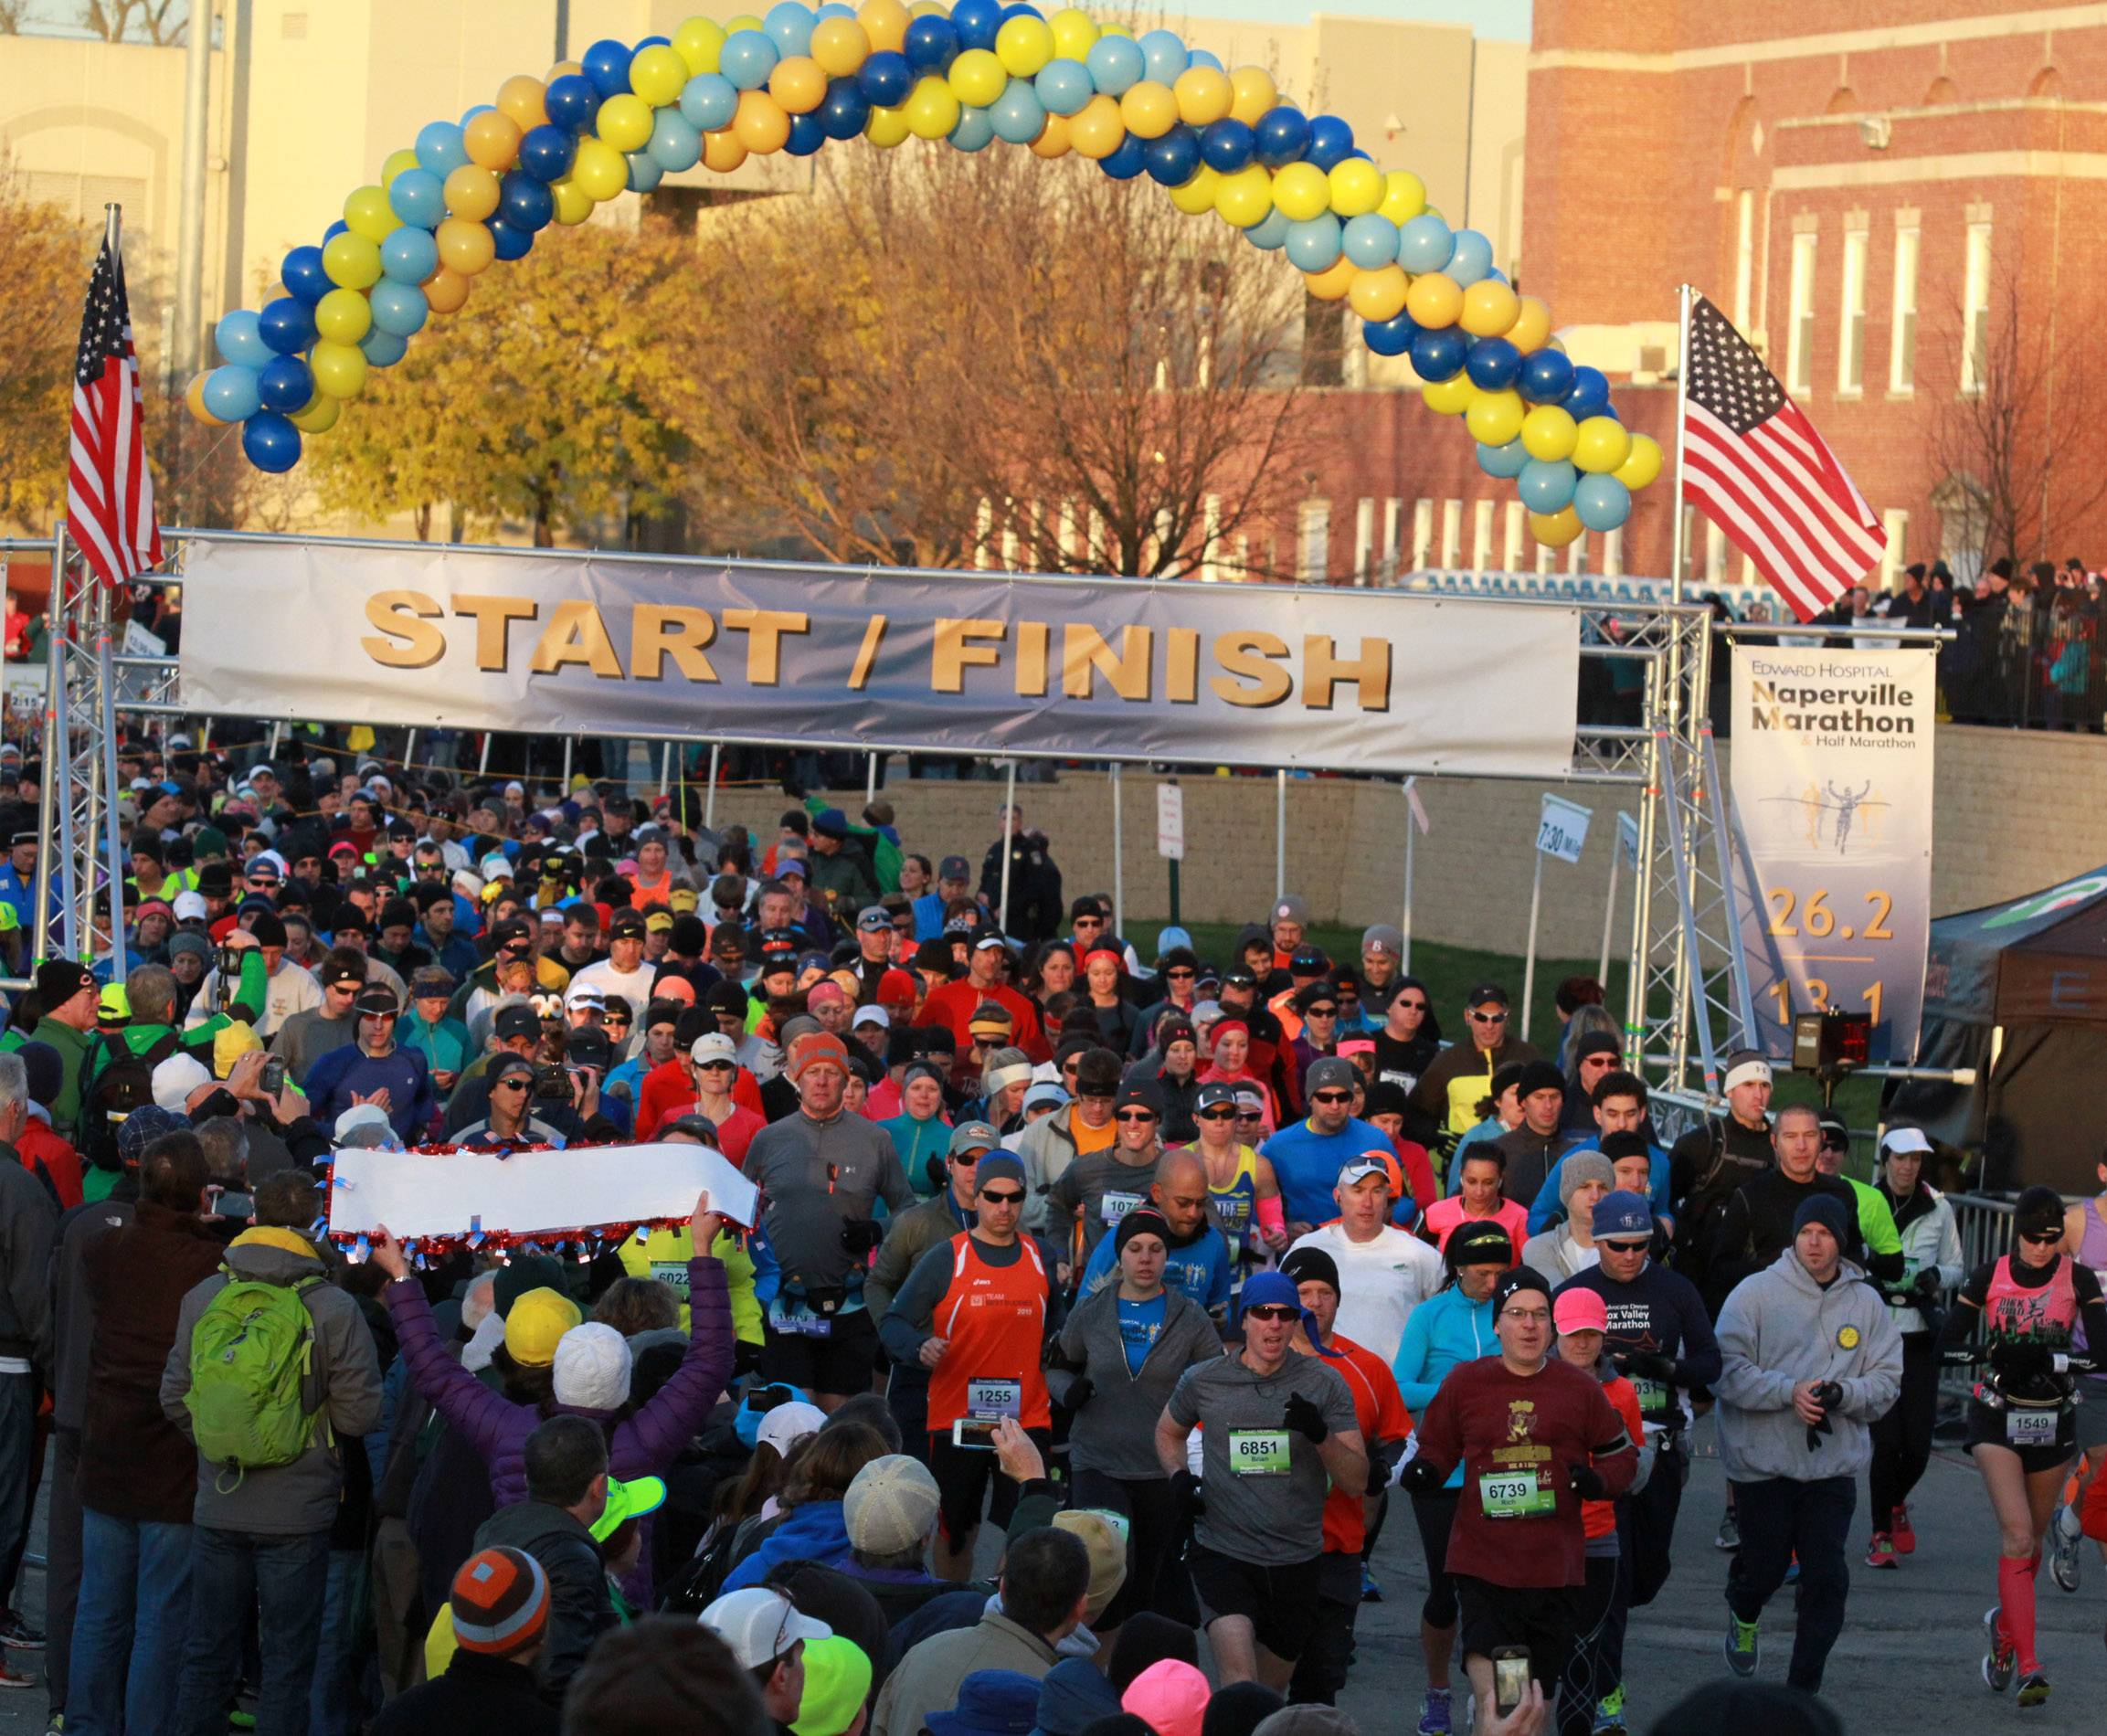 Naperville Marathon proposes new course to include more neighborhoods